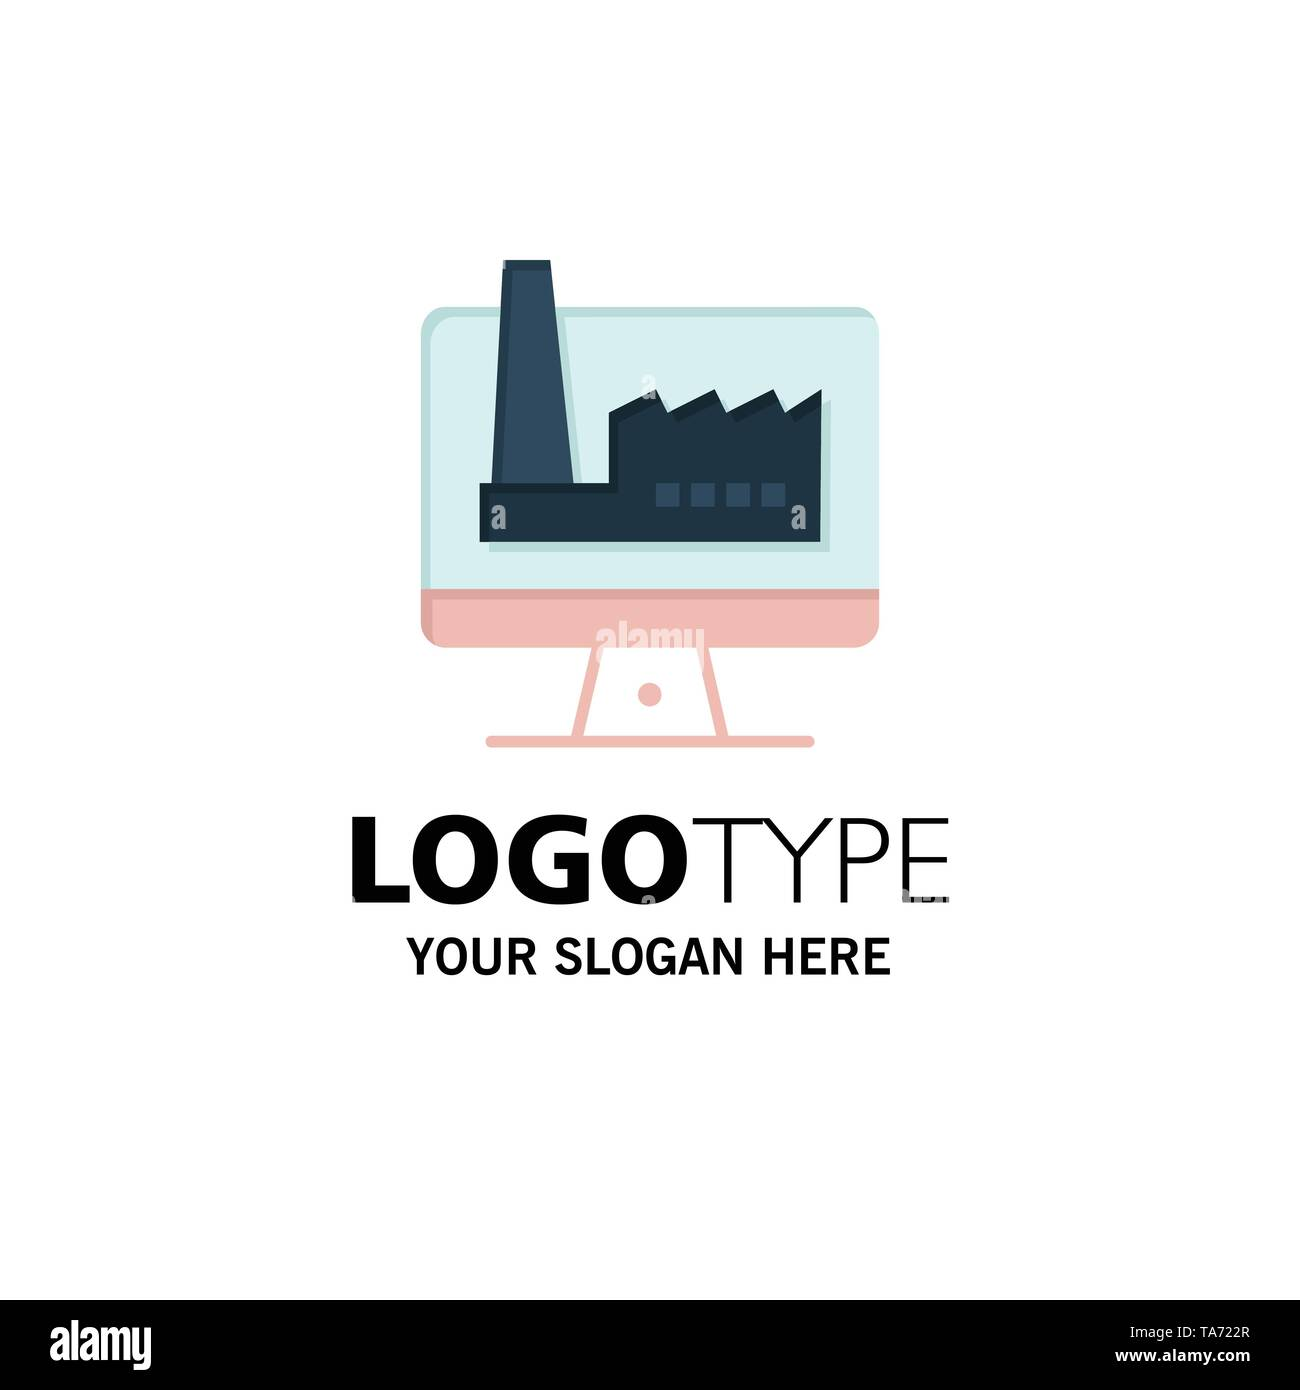 Computer, Building, Monitor, Factory Business Logo Template. Flat Color - Stock Image